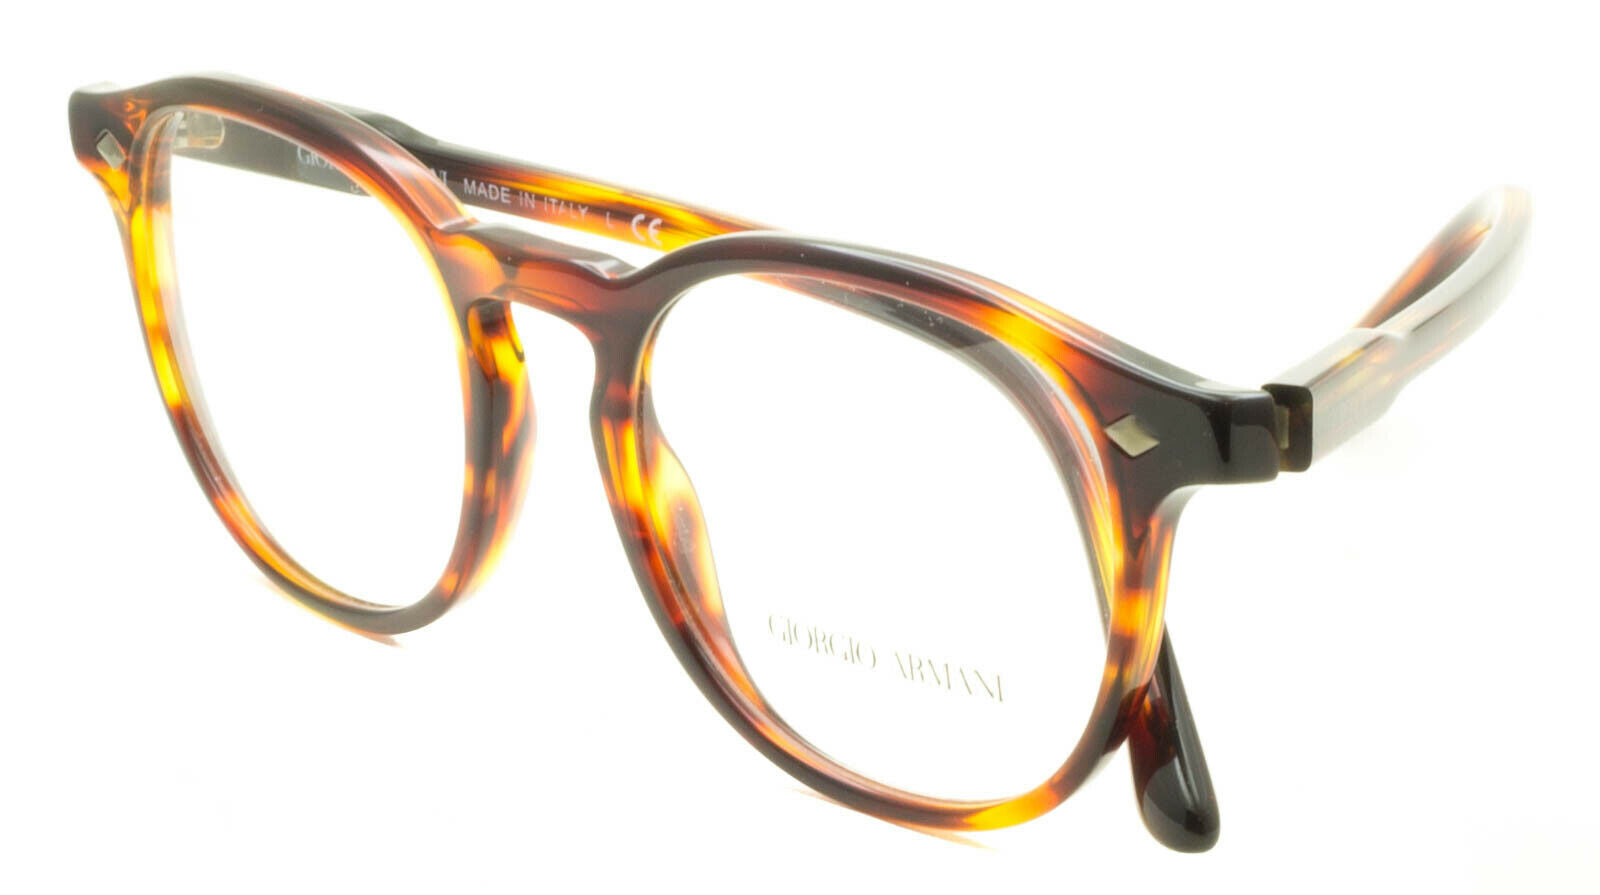 GIORGIO ARMANI AR 7136 5580 Eyewear FRAMES Eyeglasses RX Optical Glasses - Italy